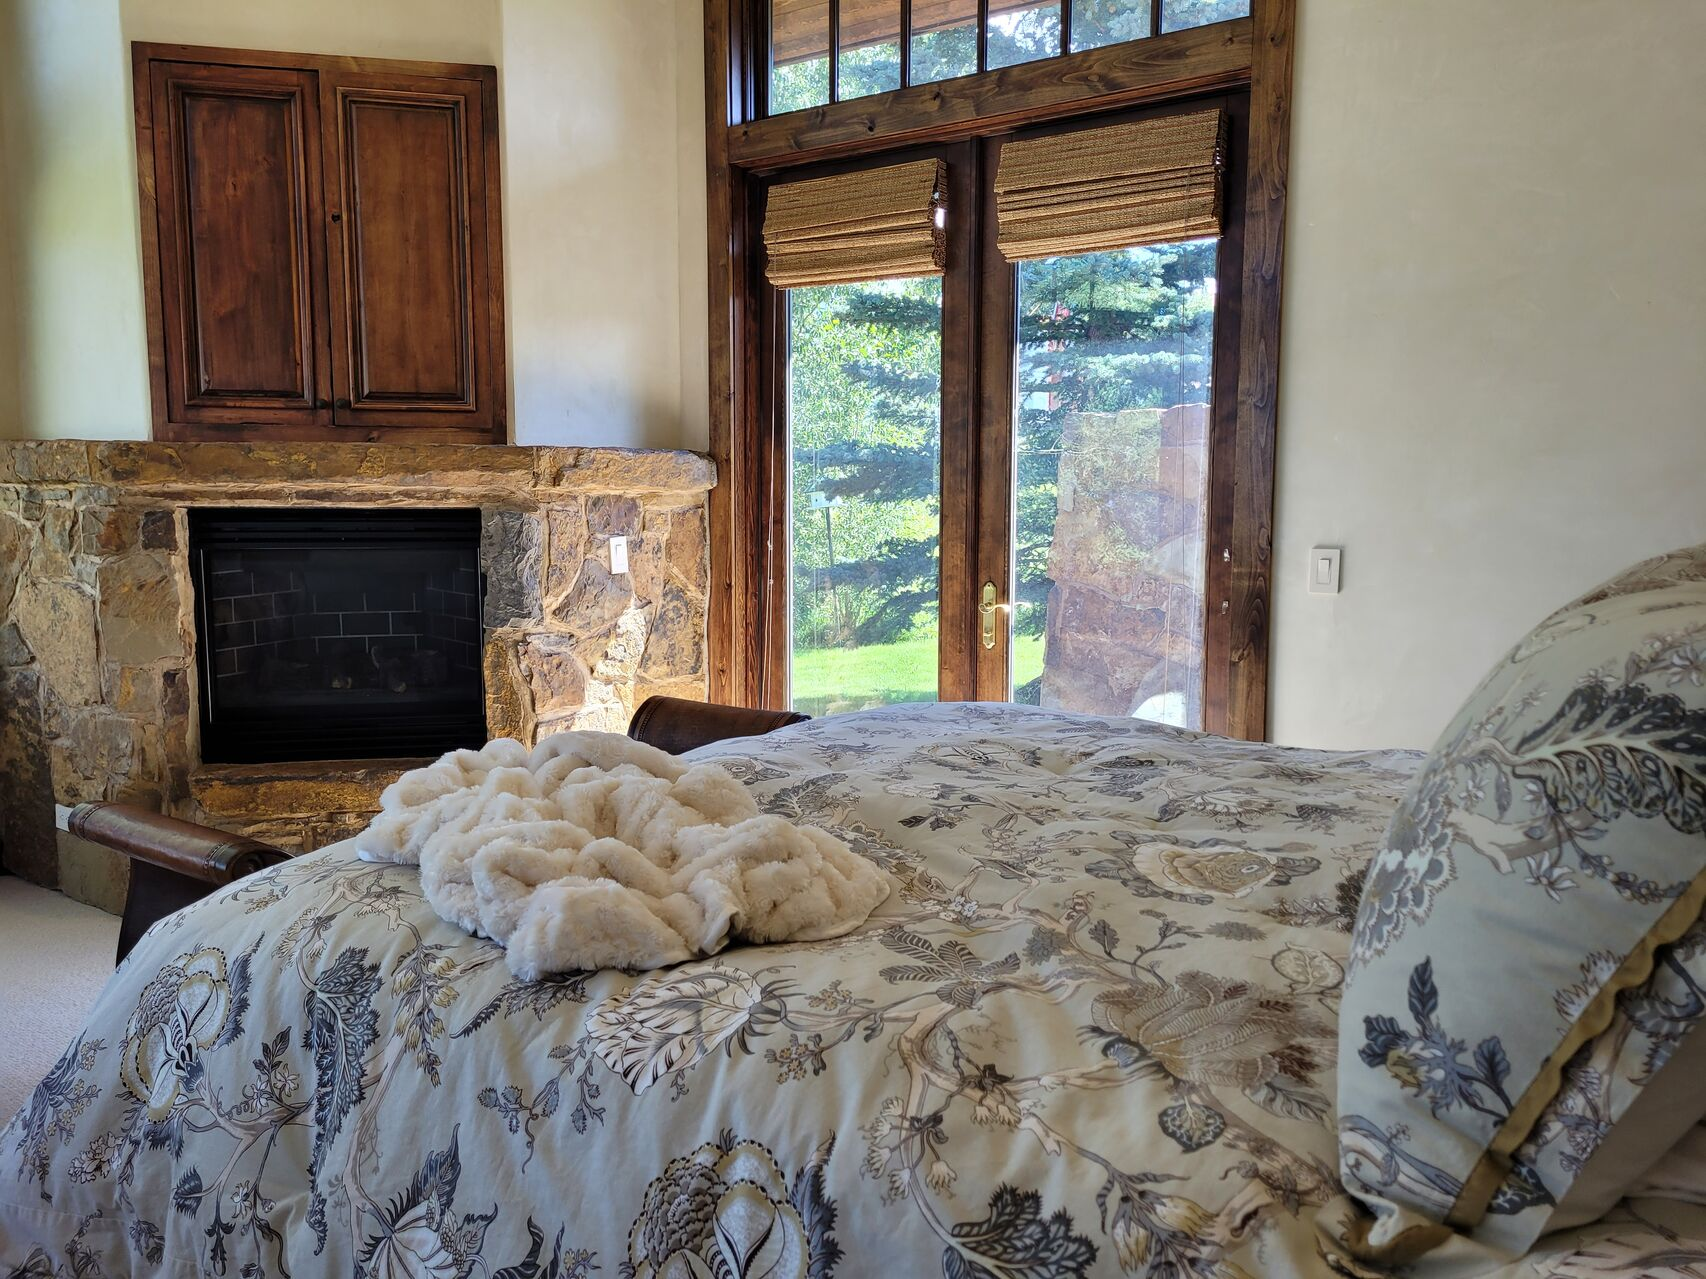 Bedroom with cozy bed and feature fireplace